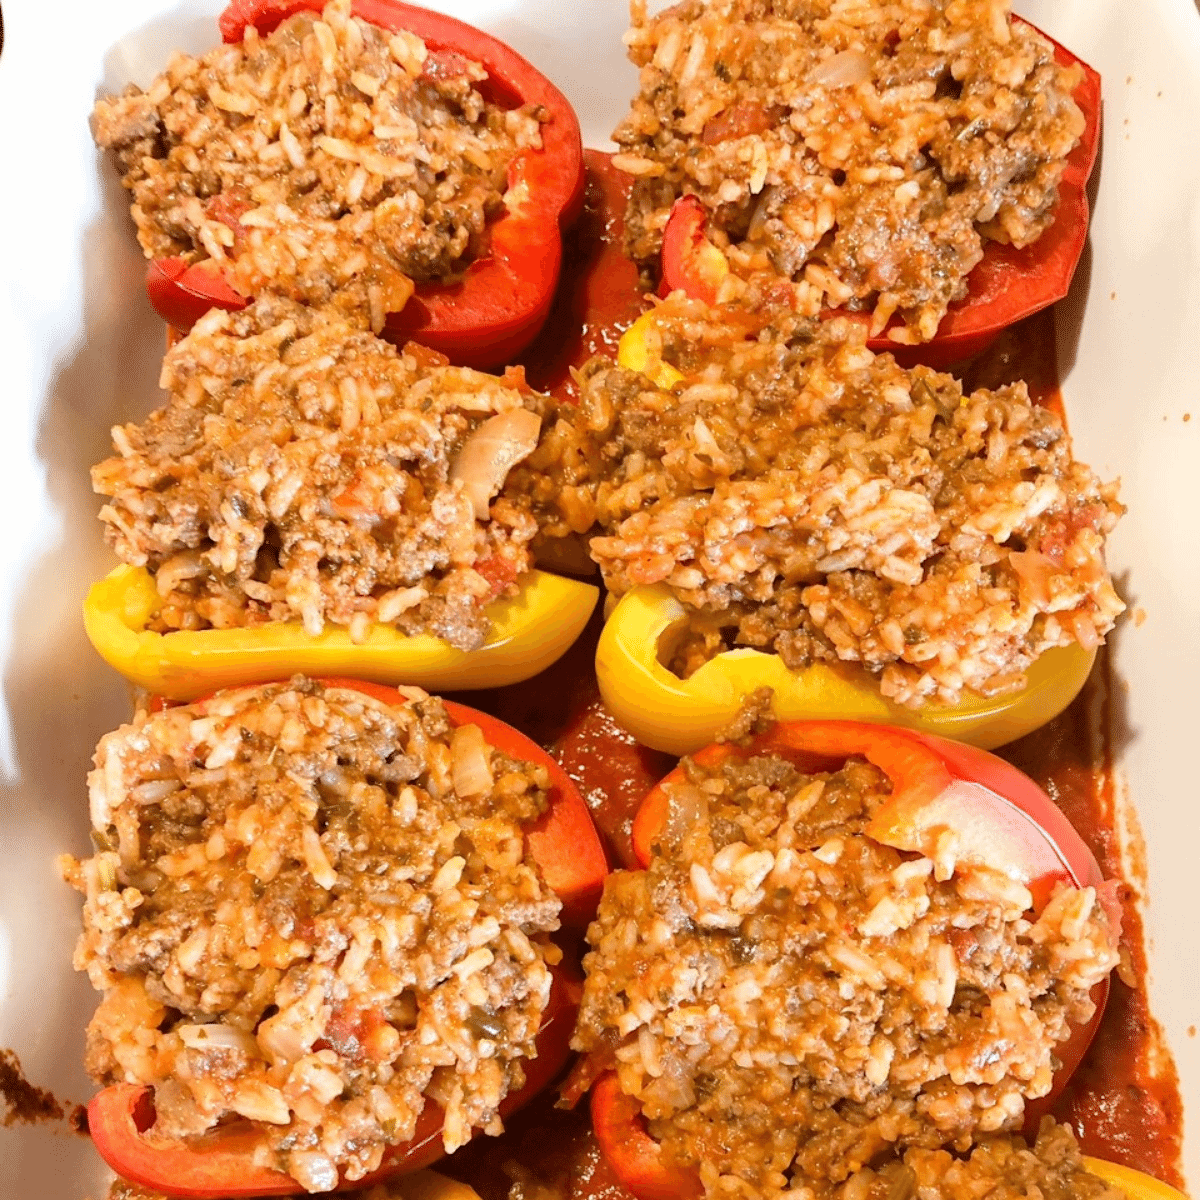 Peppers with stuffing placed in a baking dish